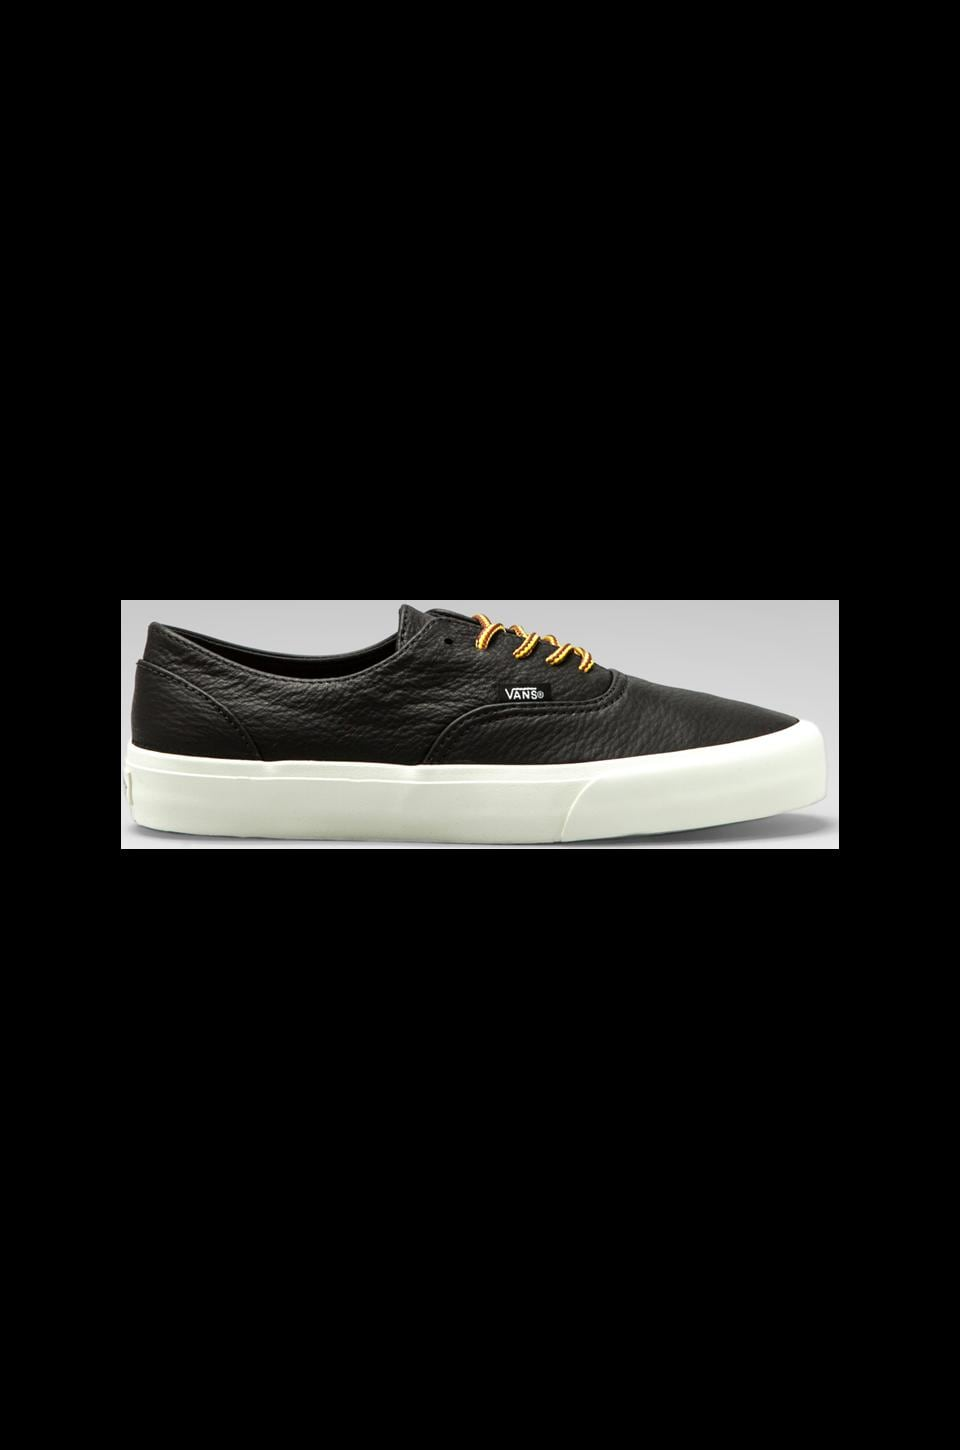 Vans California Era Decon Leather in Black/Vanilla Ice